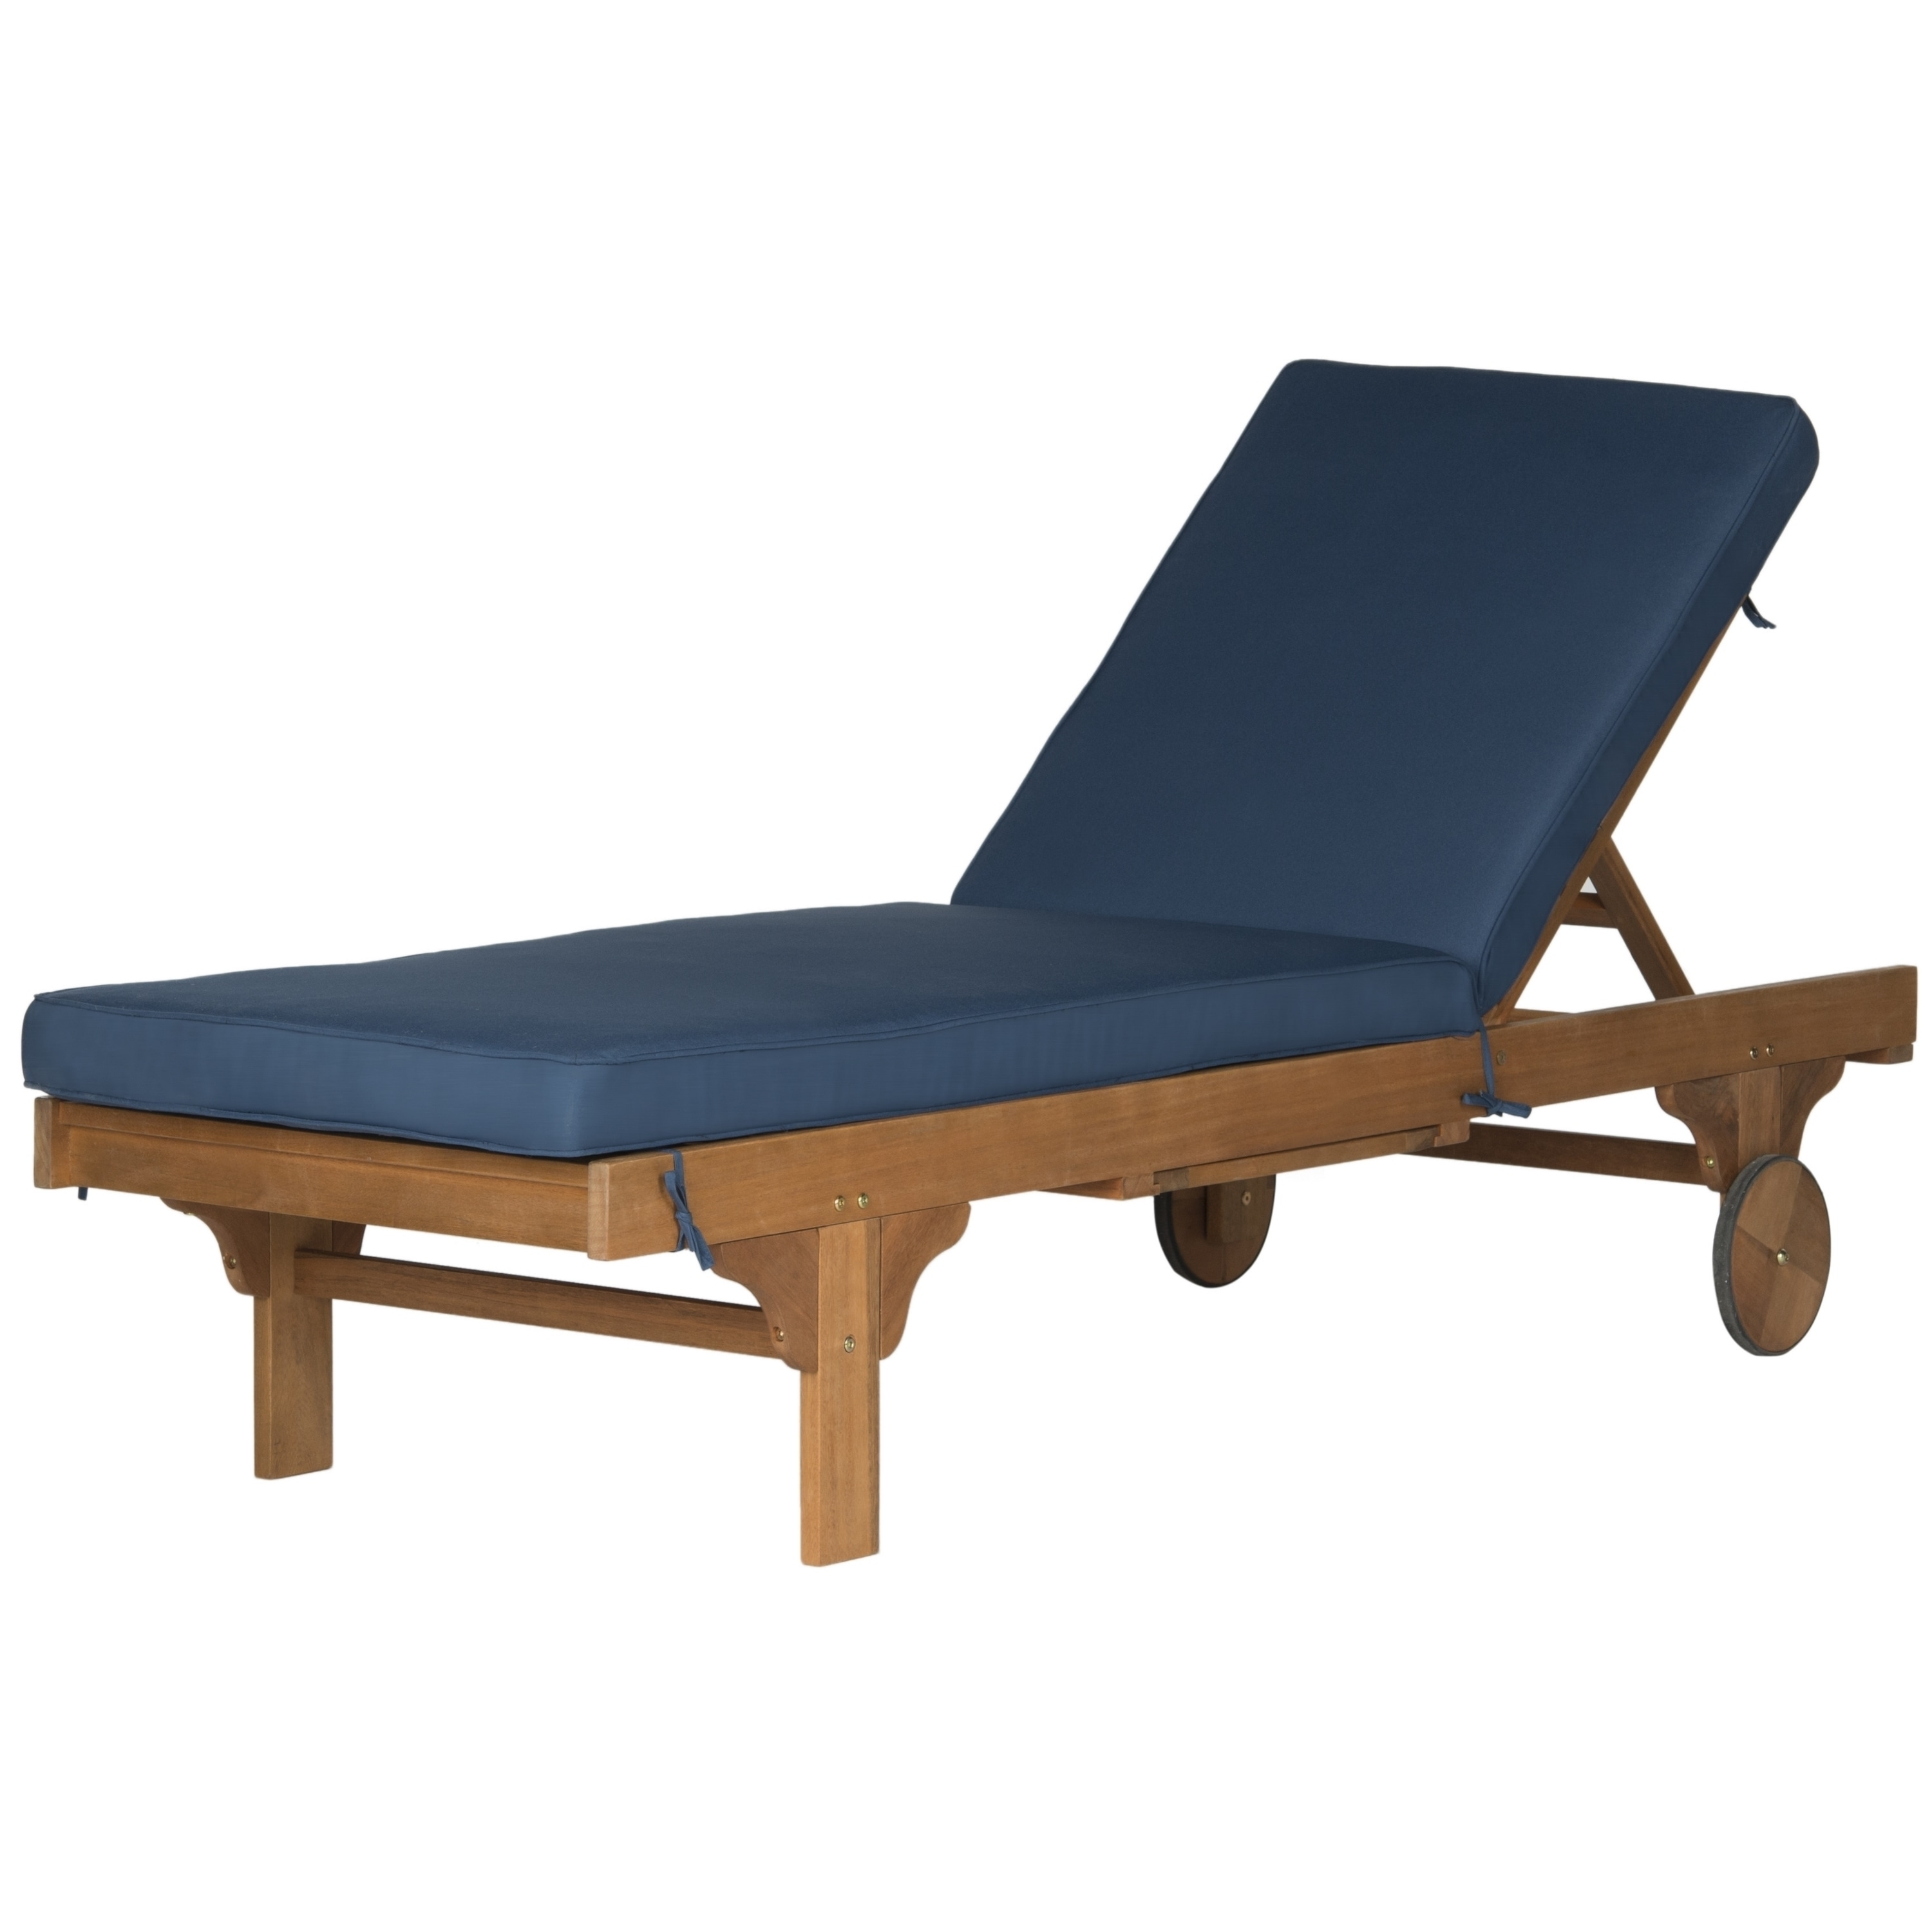 2017 Safavieh Outdoor Living Newport Brown/ Navy Adjustable Chaise Throughout Newport Chaise Lounge Chairs (View 7 of 15)